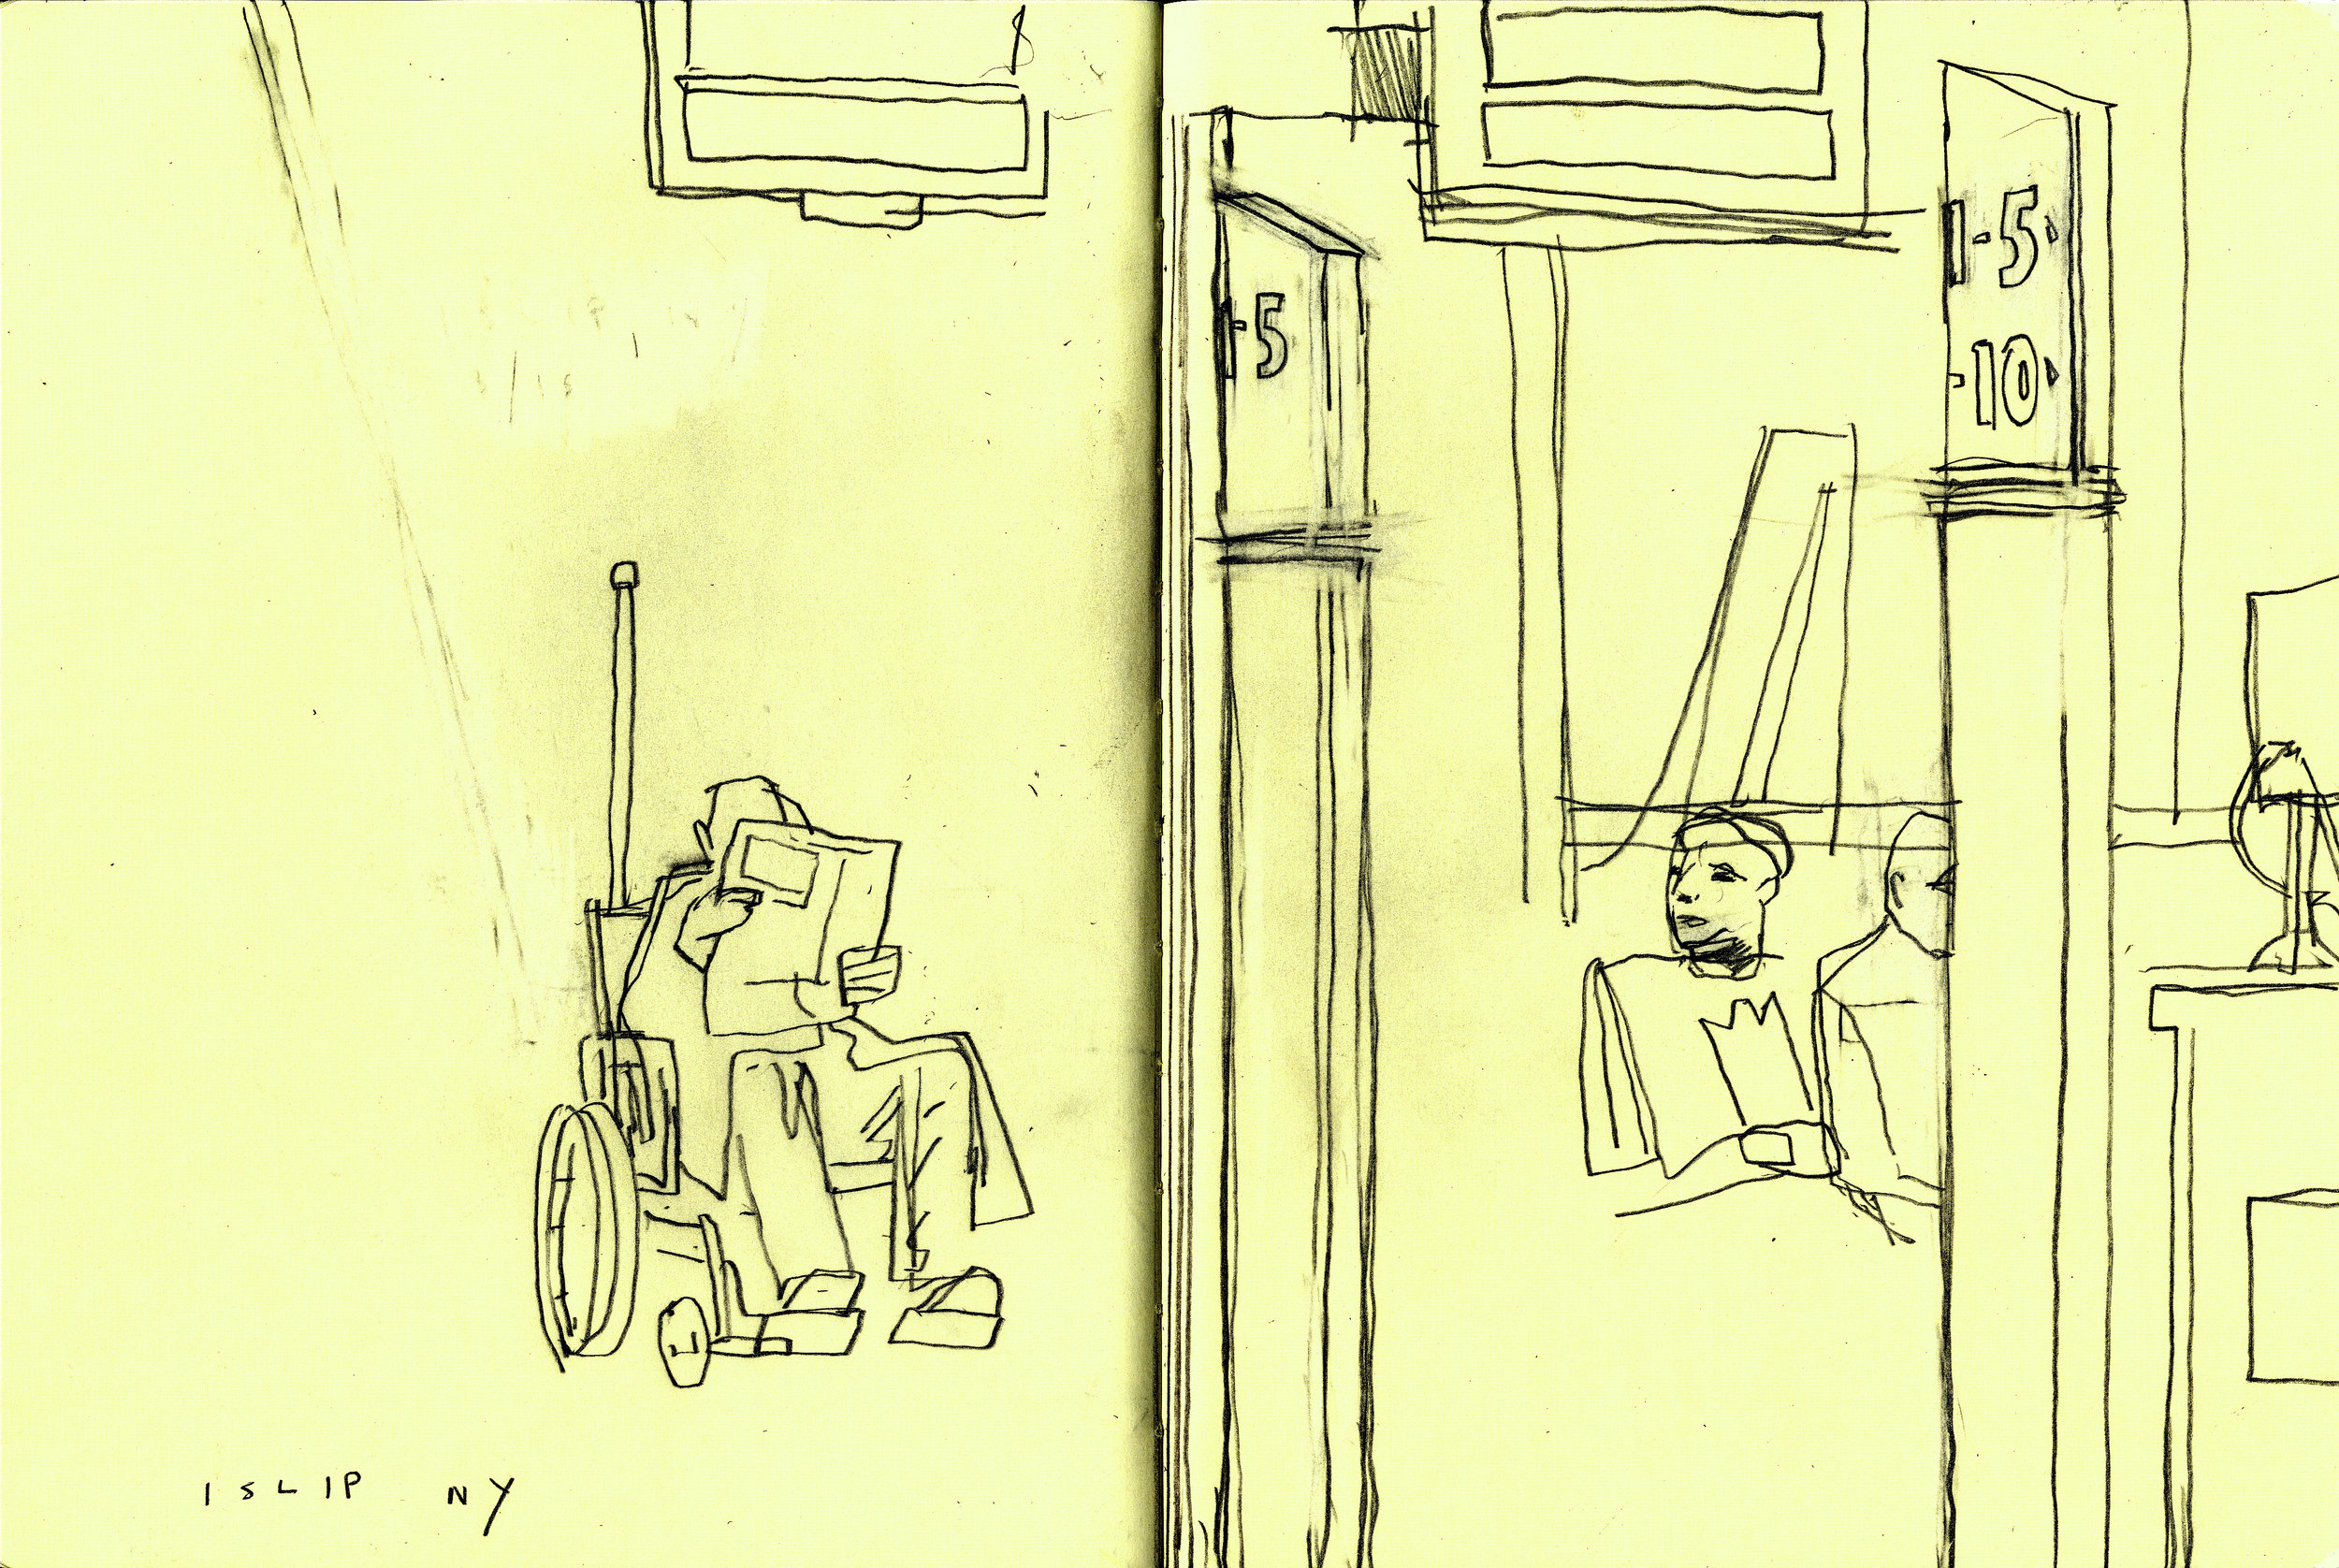 D.B. Dowd, Airport,Islip, NY.2011.Sketchbook drawing.